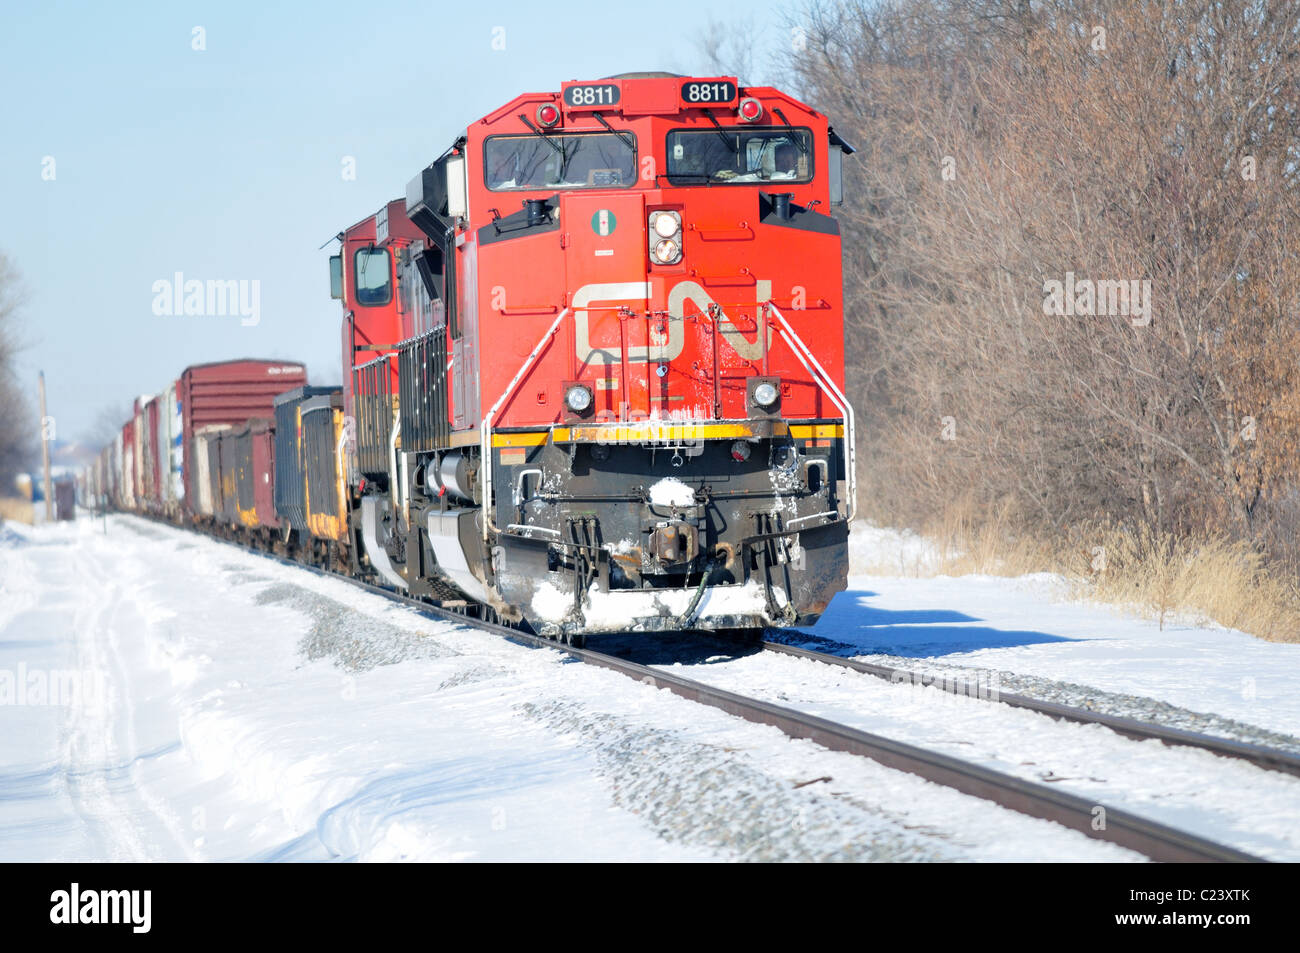 Unit 8811 heads up two Canadian National Railway locomotives on a cold winter day. Bartlett, Illinois, USA. - Stock Image